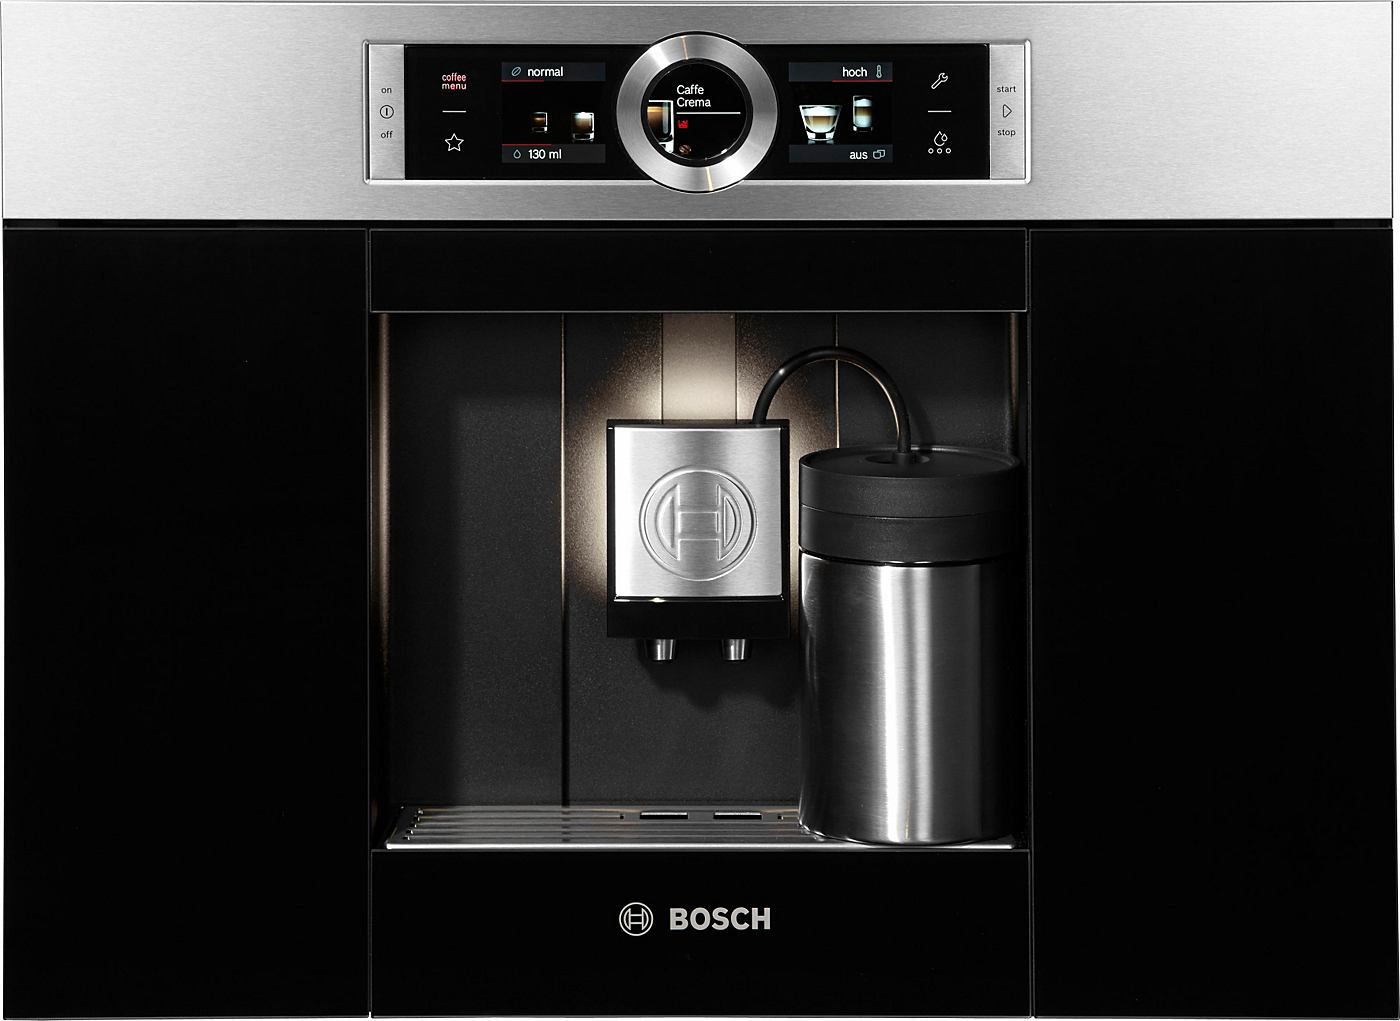 bosch einbau kaffeevollautomat ctl636es1 integrierter milchtank. Black Bedroom Furniture Sets. Home Design Ideas